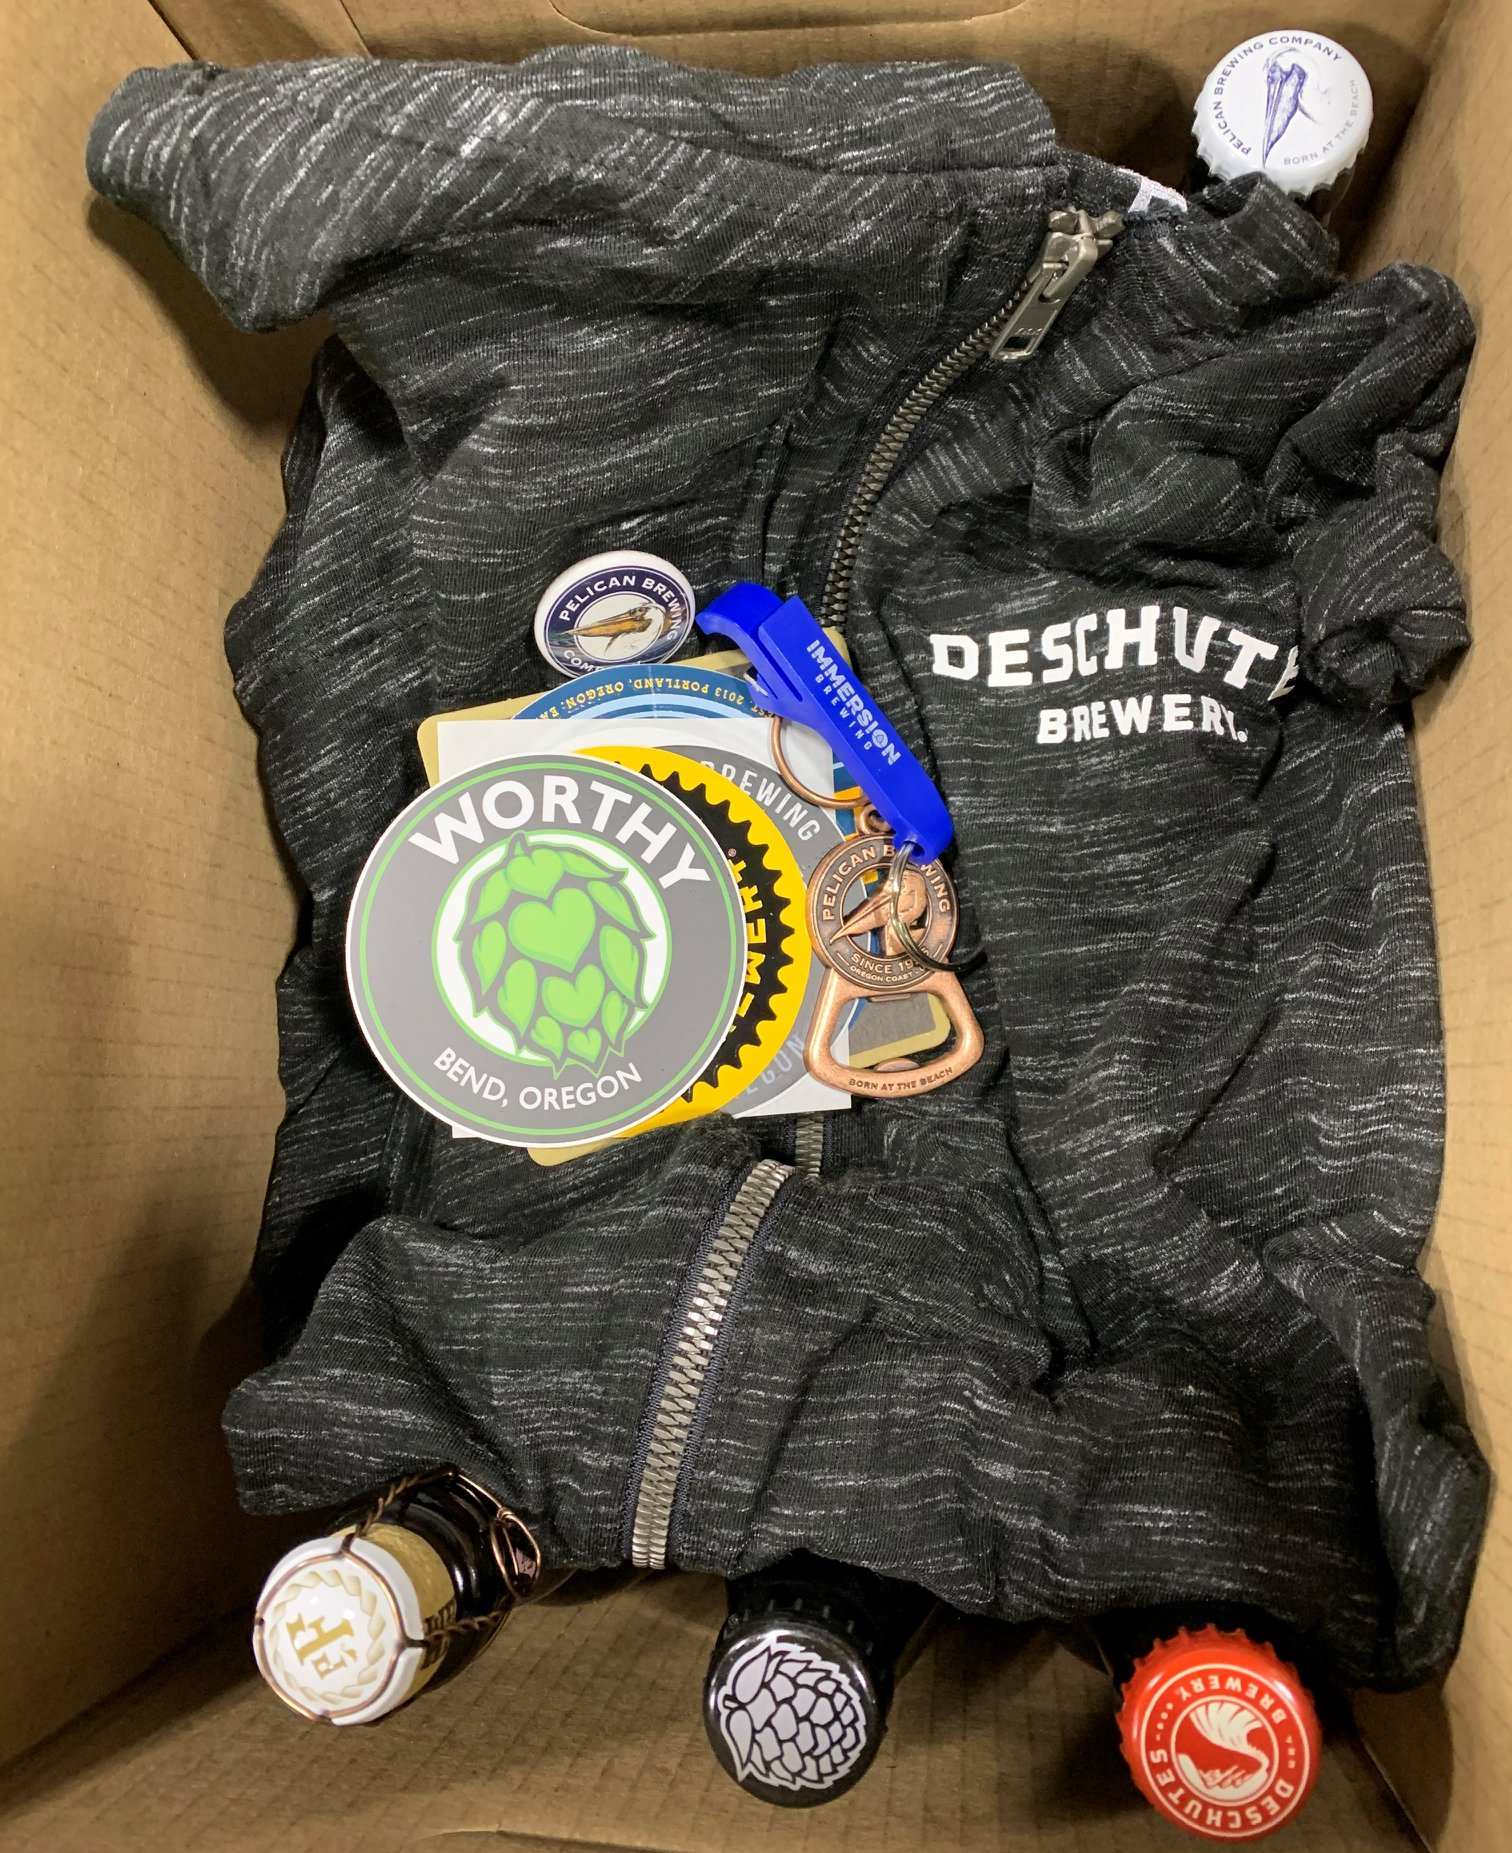 Swag box for the first 250 to order the Deschutes Brewery Forged Together Box.